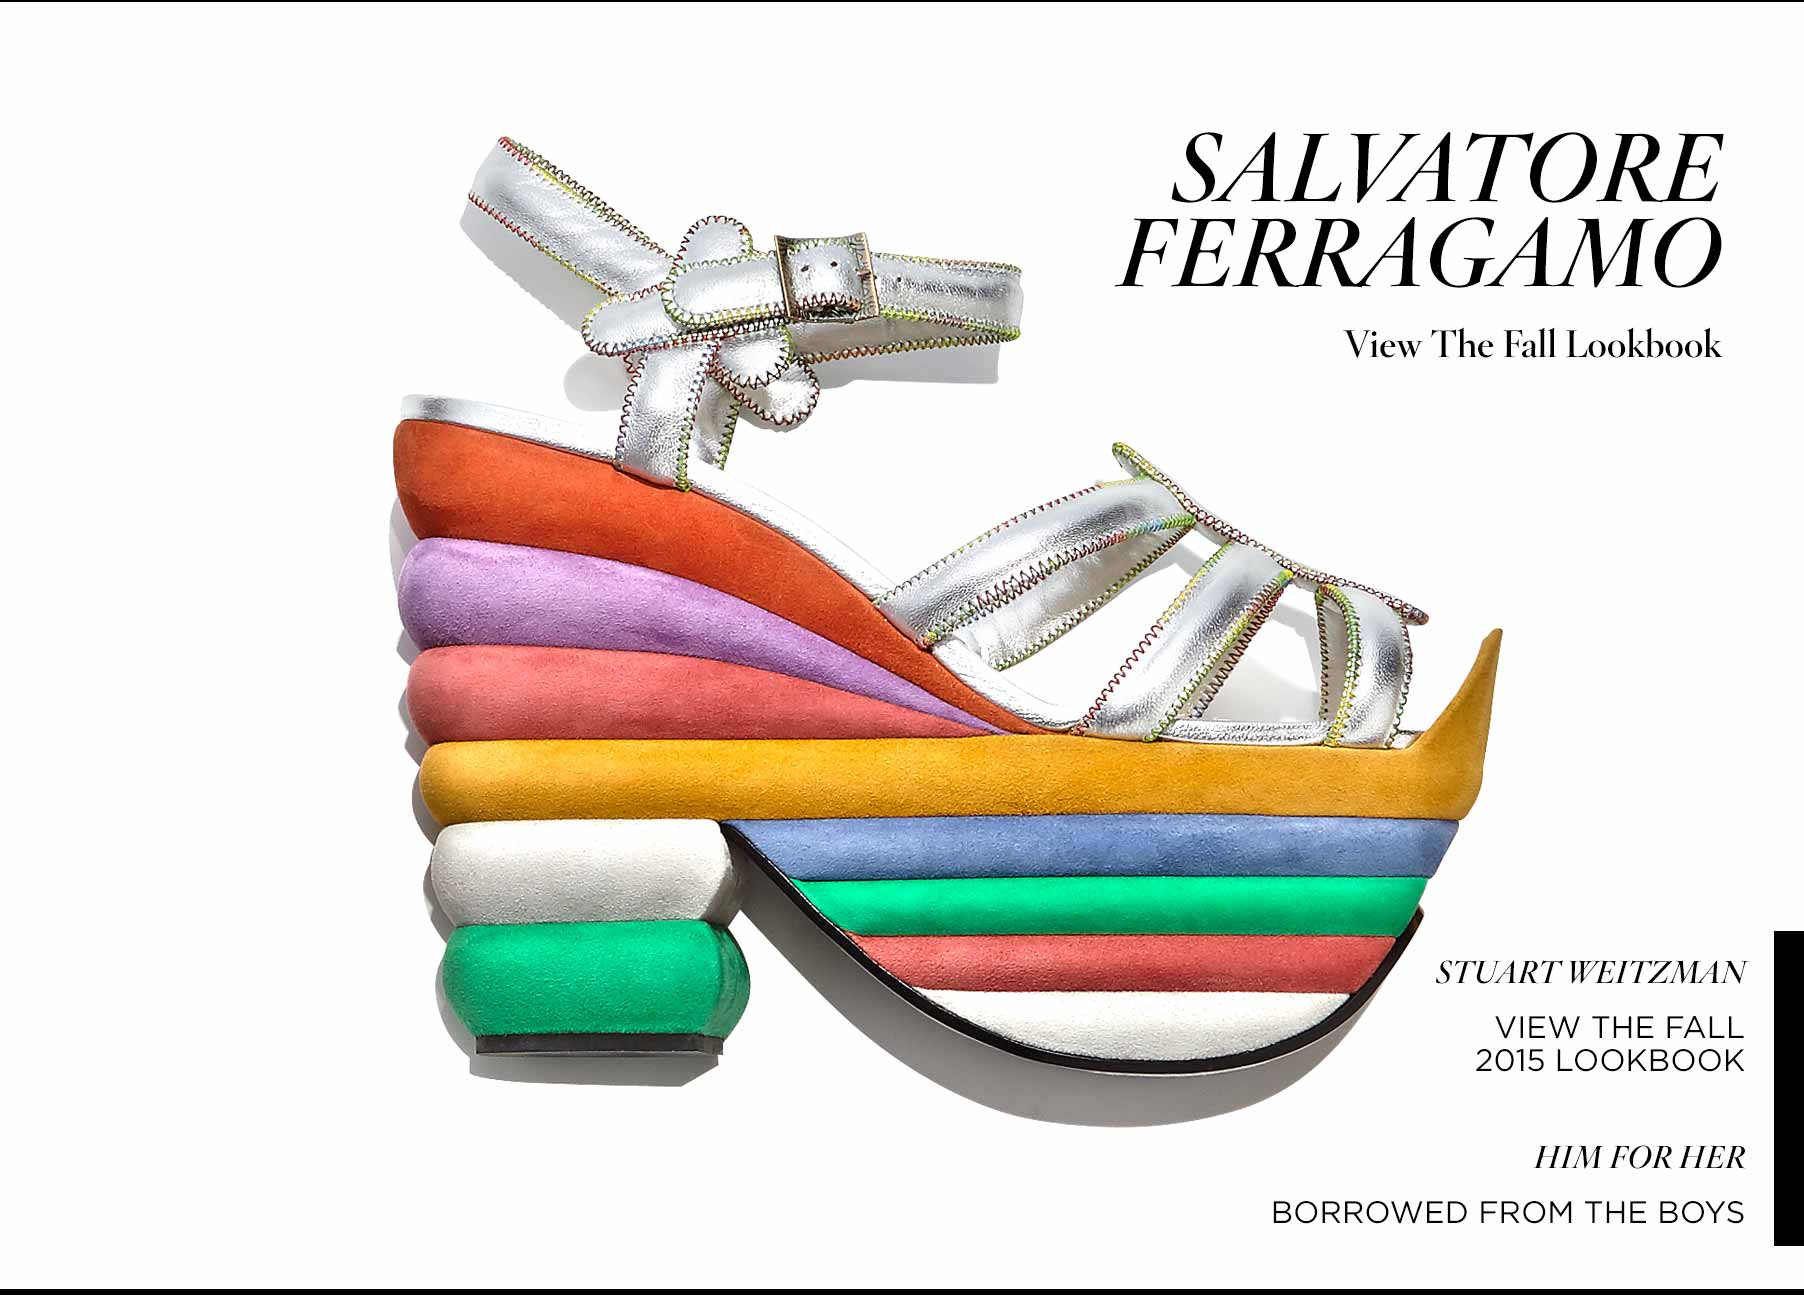 Salvatore Ferragamo Lookbook